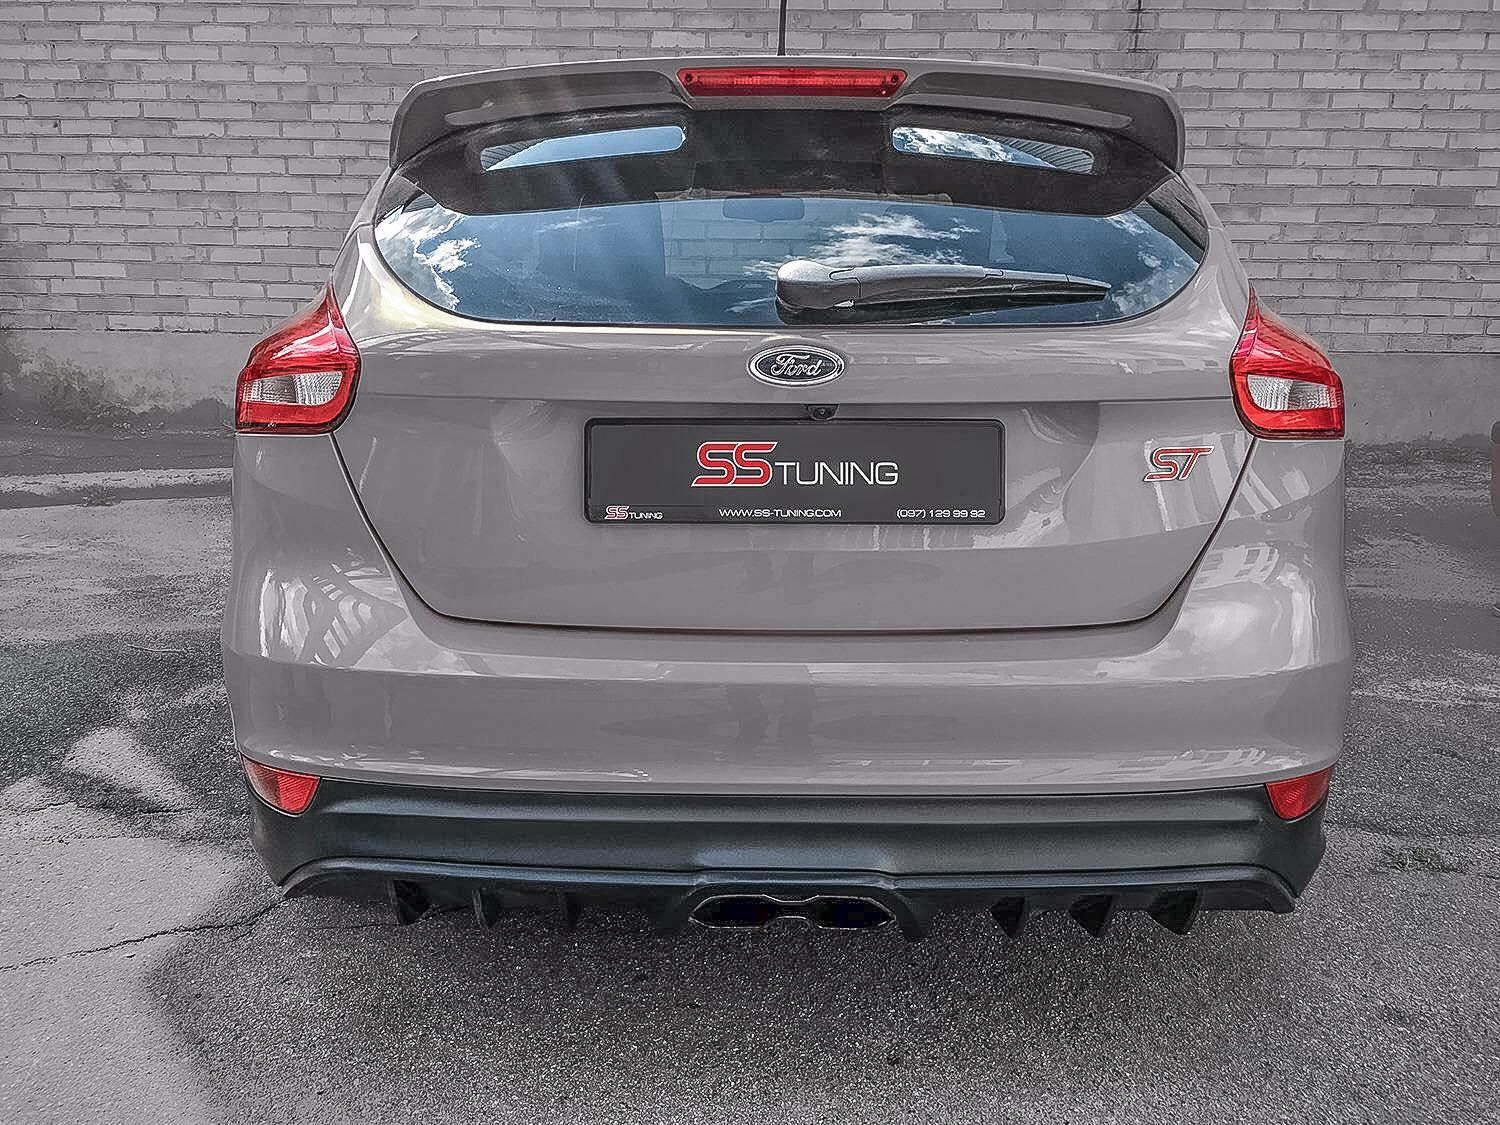 ss tuning 39 s mk3 5 rear diffuser now available. Black Bedroom Furniture Sets. Home Design Ideas